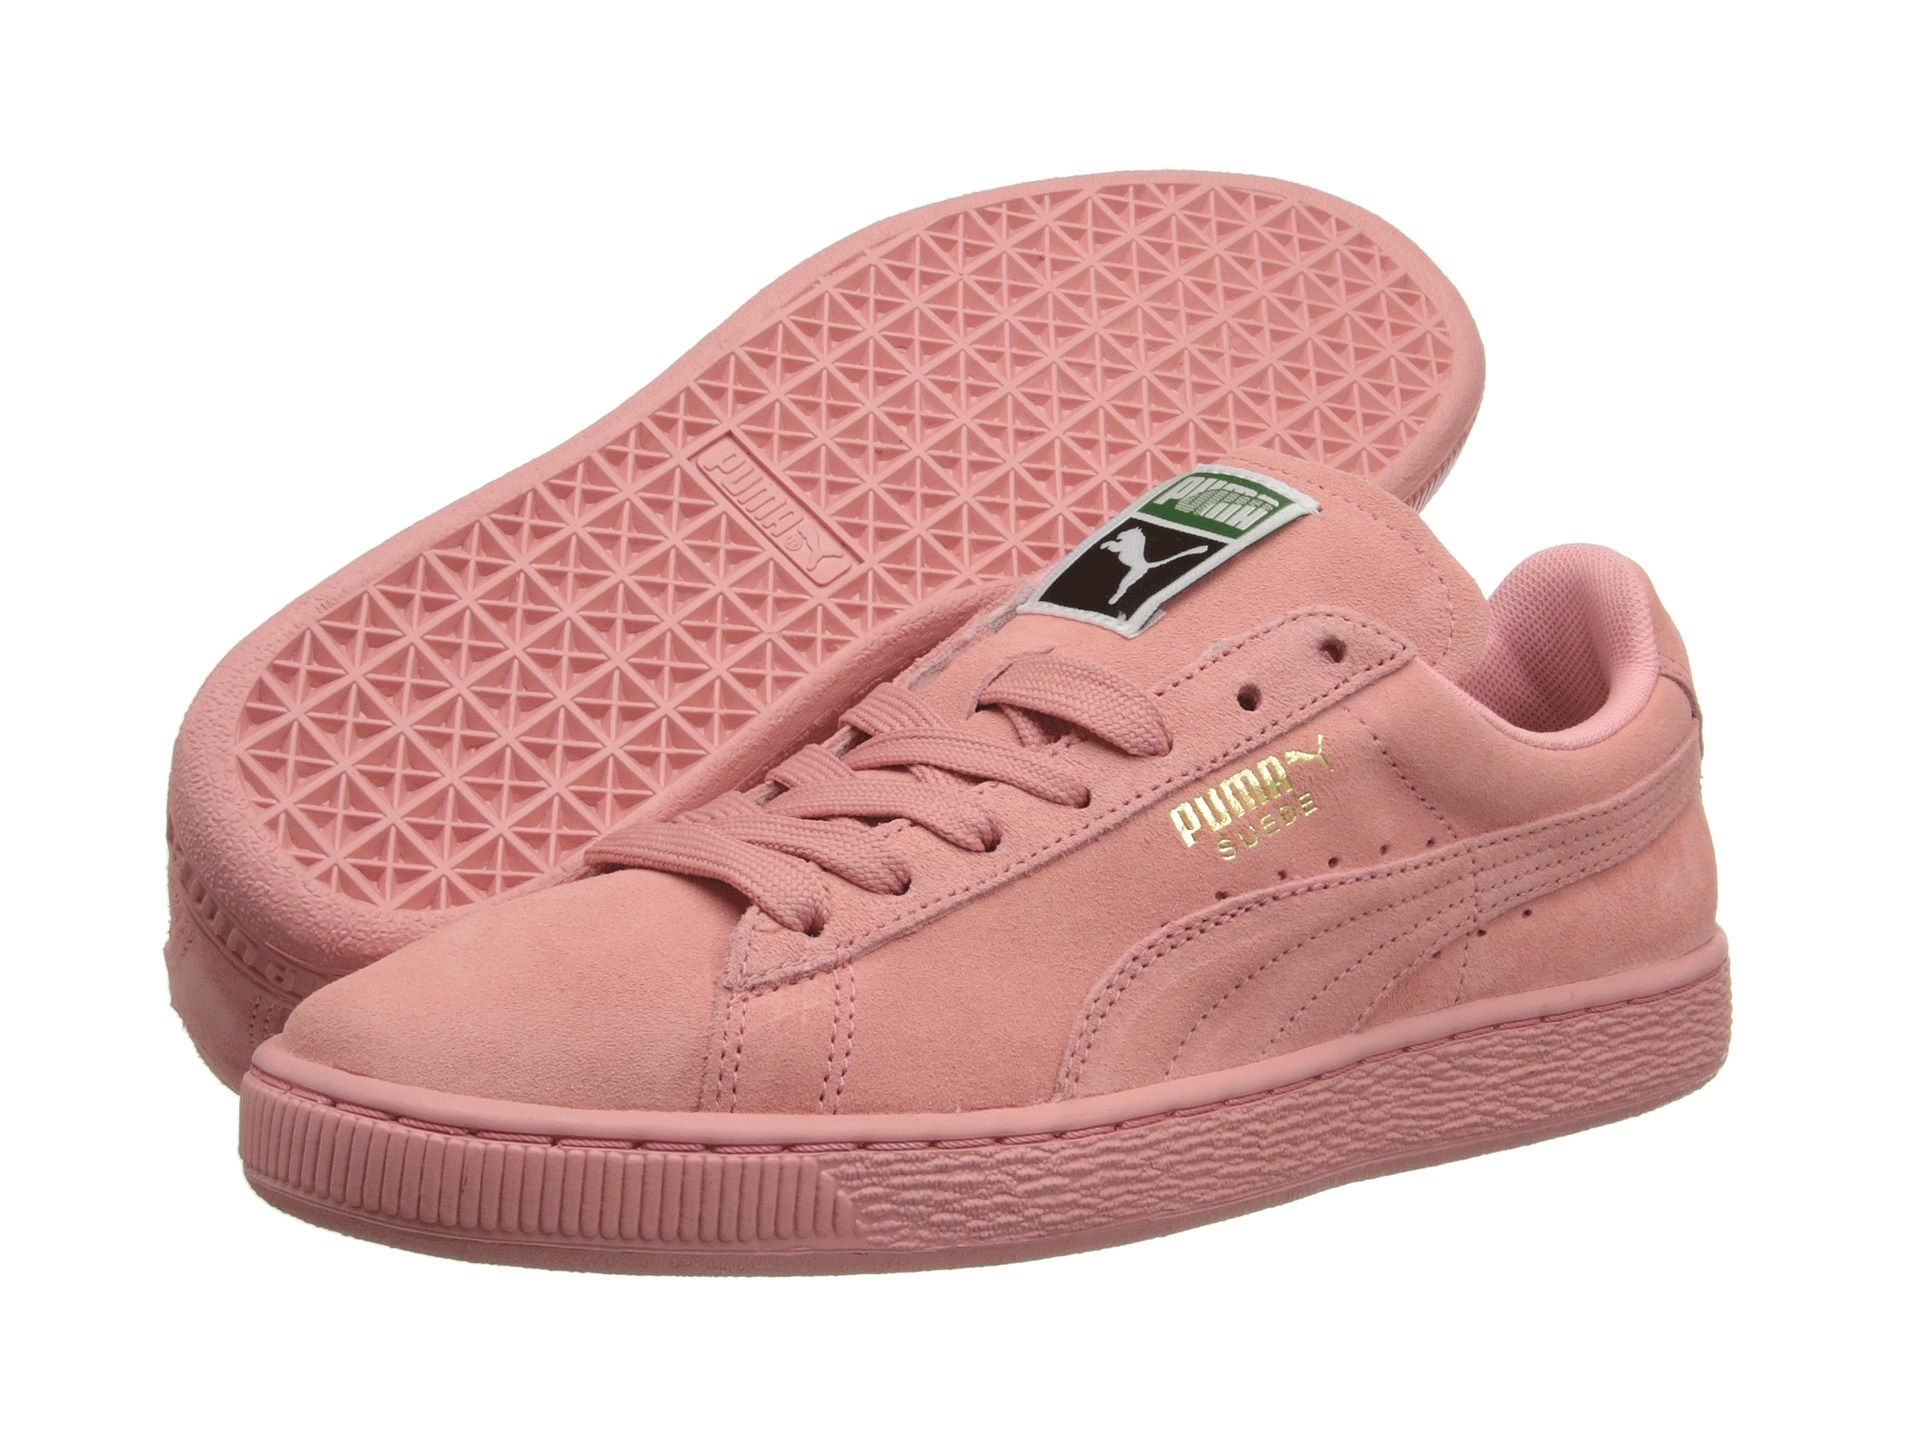 new concept ac5b6 4a410 Women's Pink Suede Classic Wns